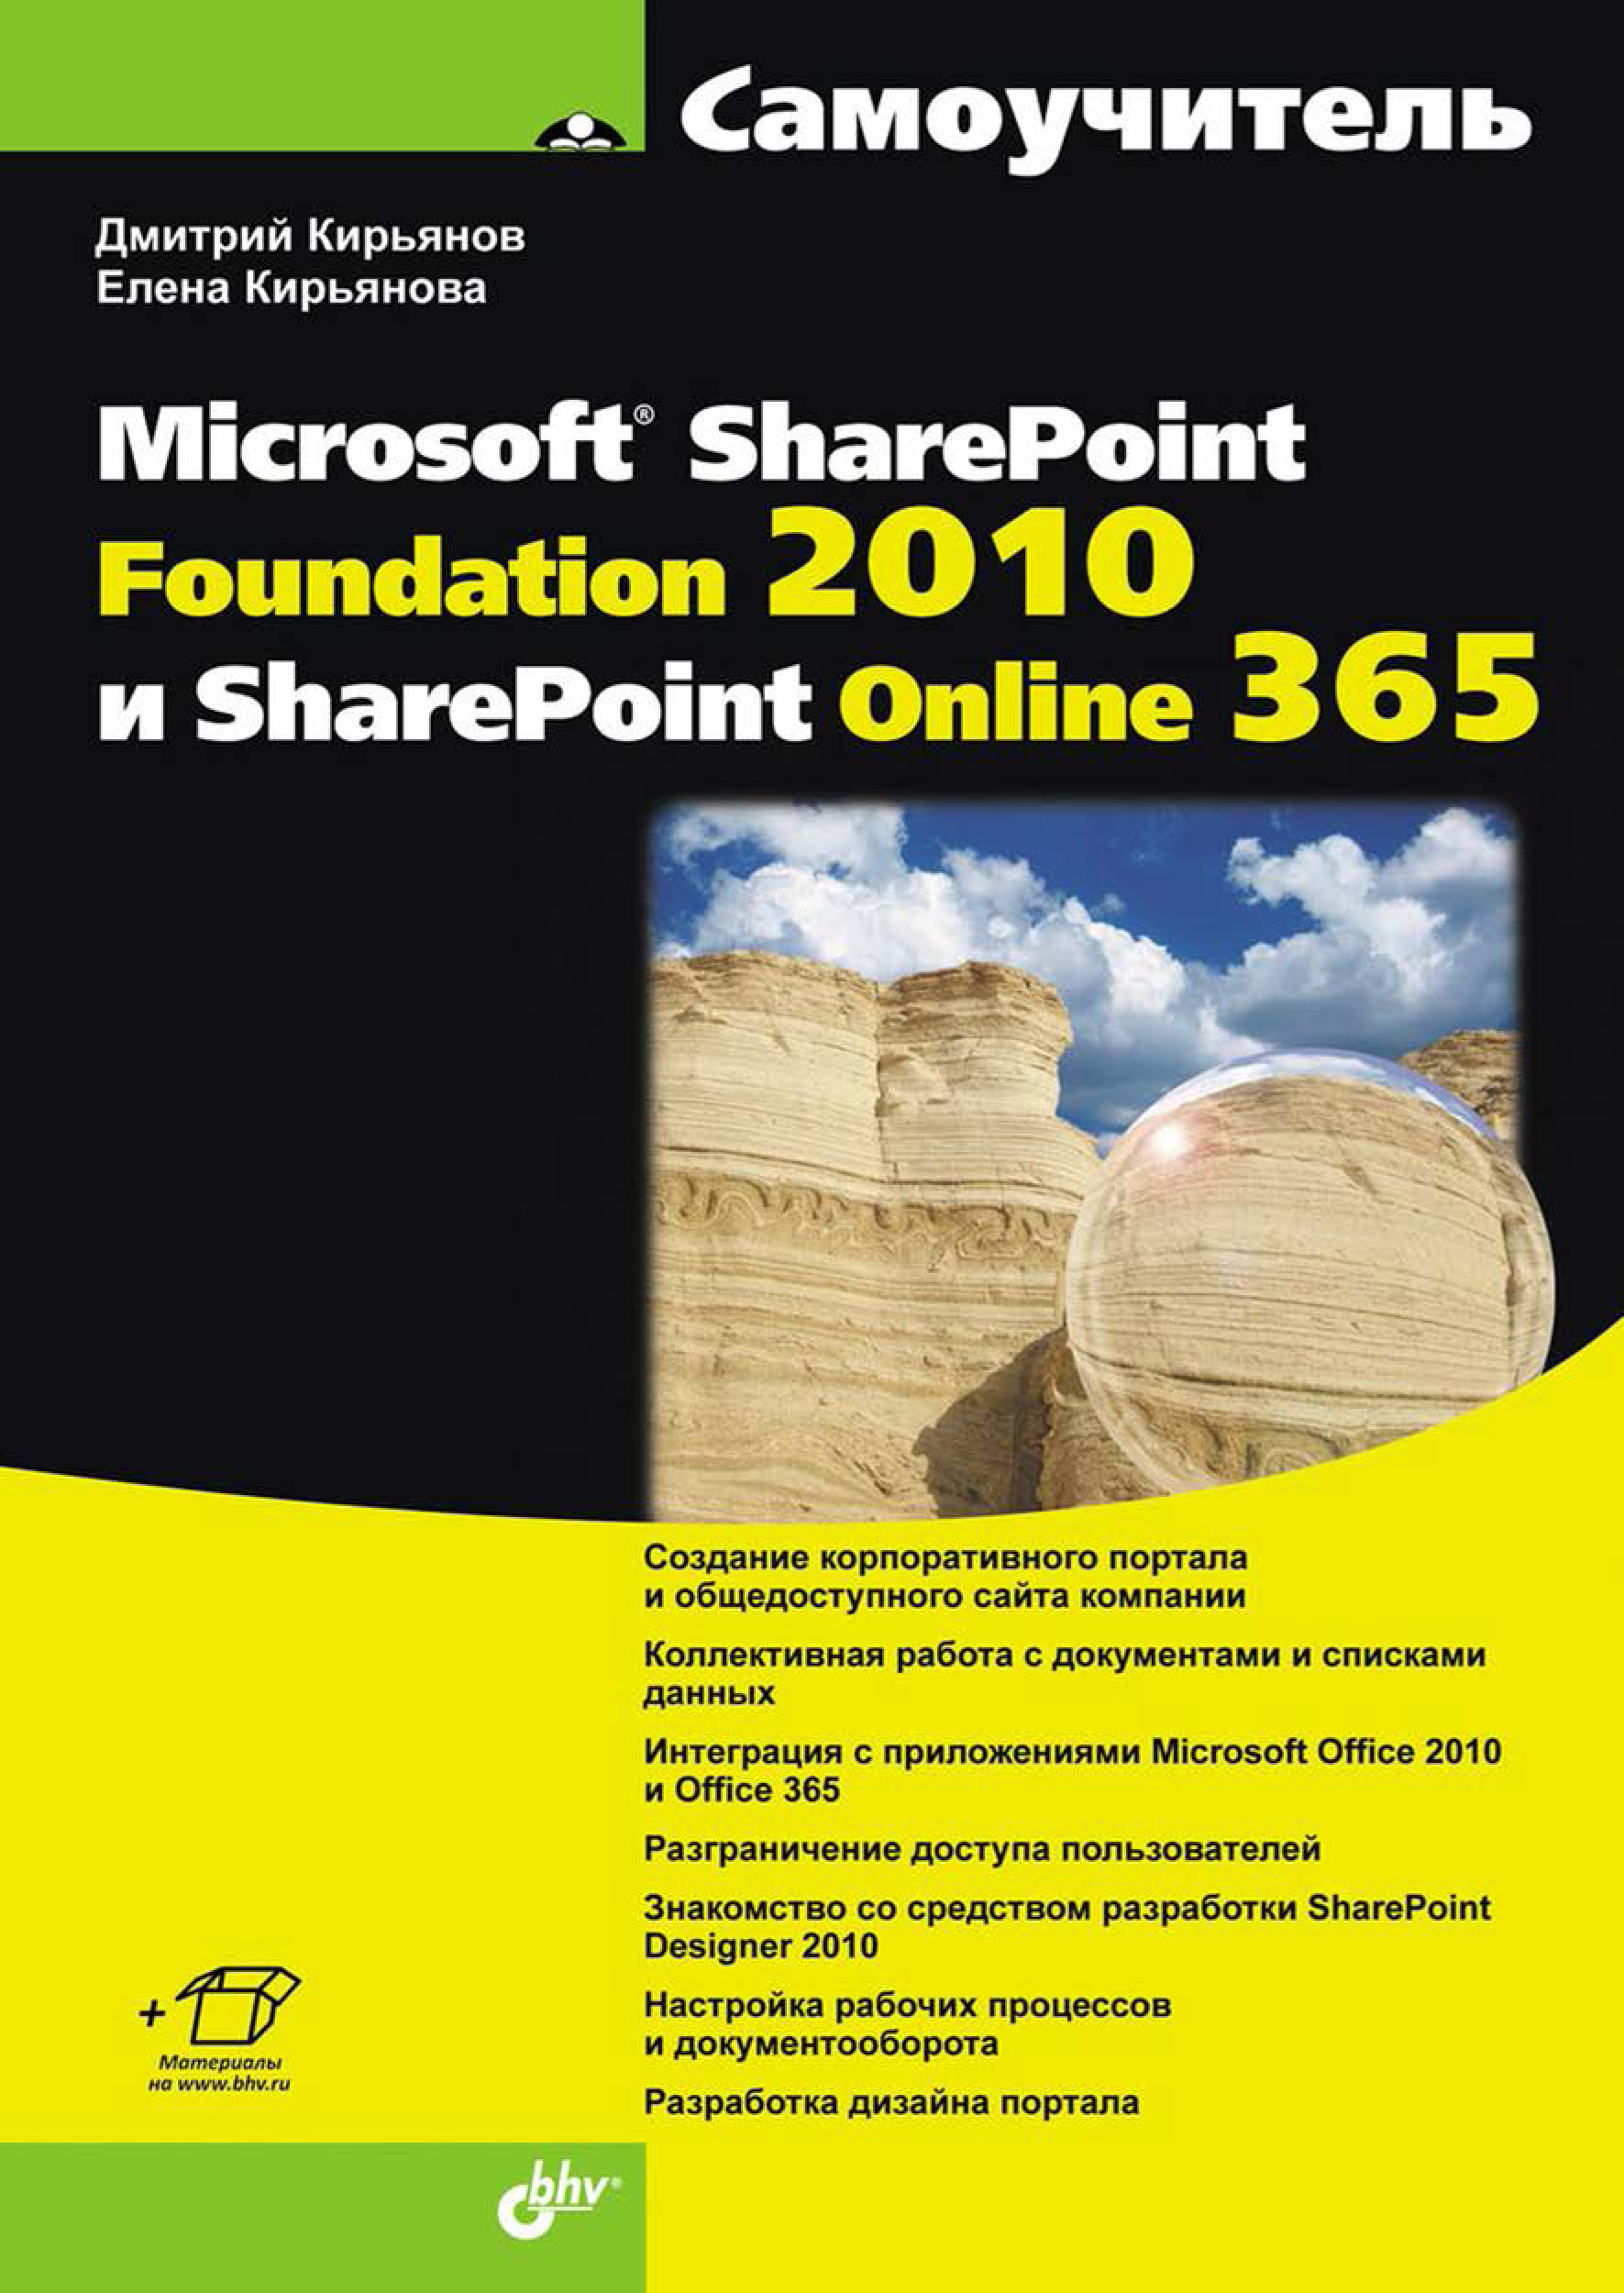 Елена Кирьянова Самоучитель Microsoft SharePoint Foundation 2010 и SharePoint Online 365 kenneth schaefer professional sharepoint 2010 development